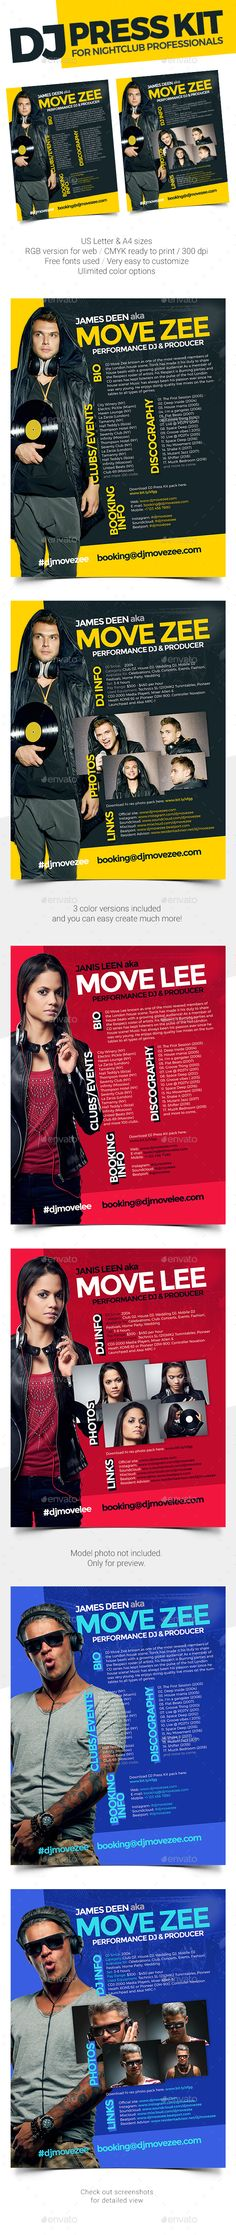 Groove - DJ Press Kit \/ Resume PSD Template Press kit, Resume - dj resume